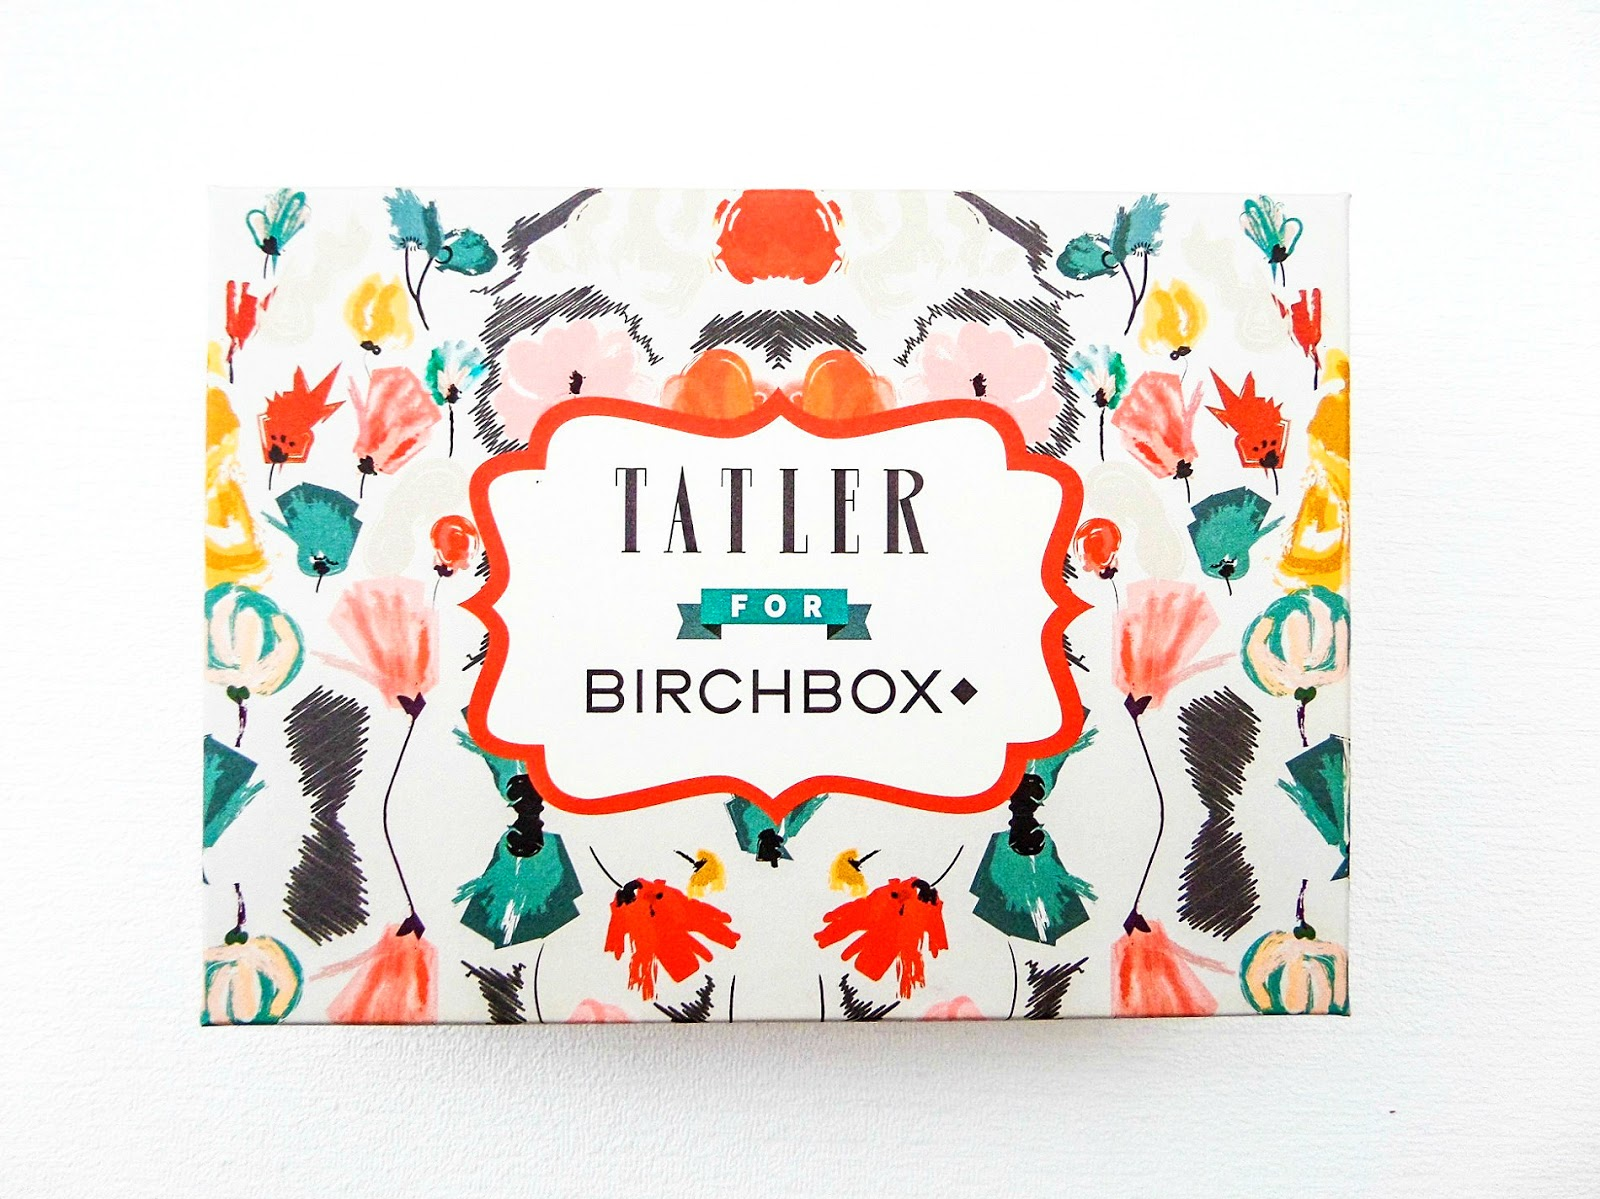 Tatler Magazine does Birchbox